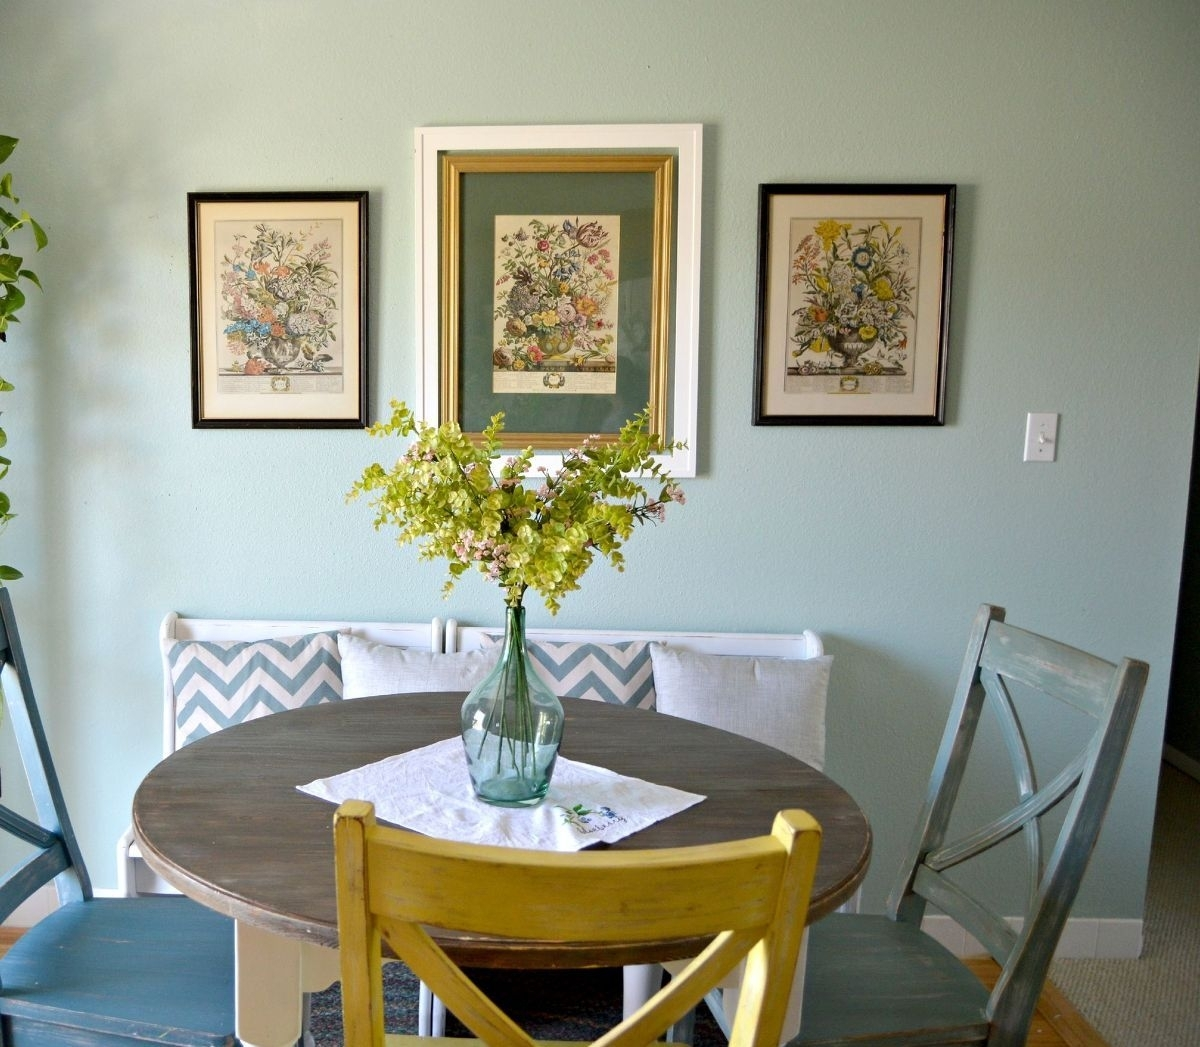 Canvas Wall Art For Dining Room – Alliancemv For Most Current Canvas Wall Art For Dining Room (View 4 of 15)